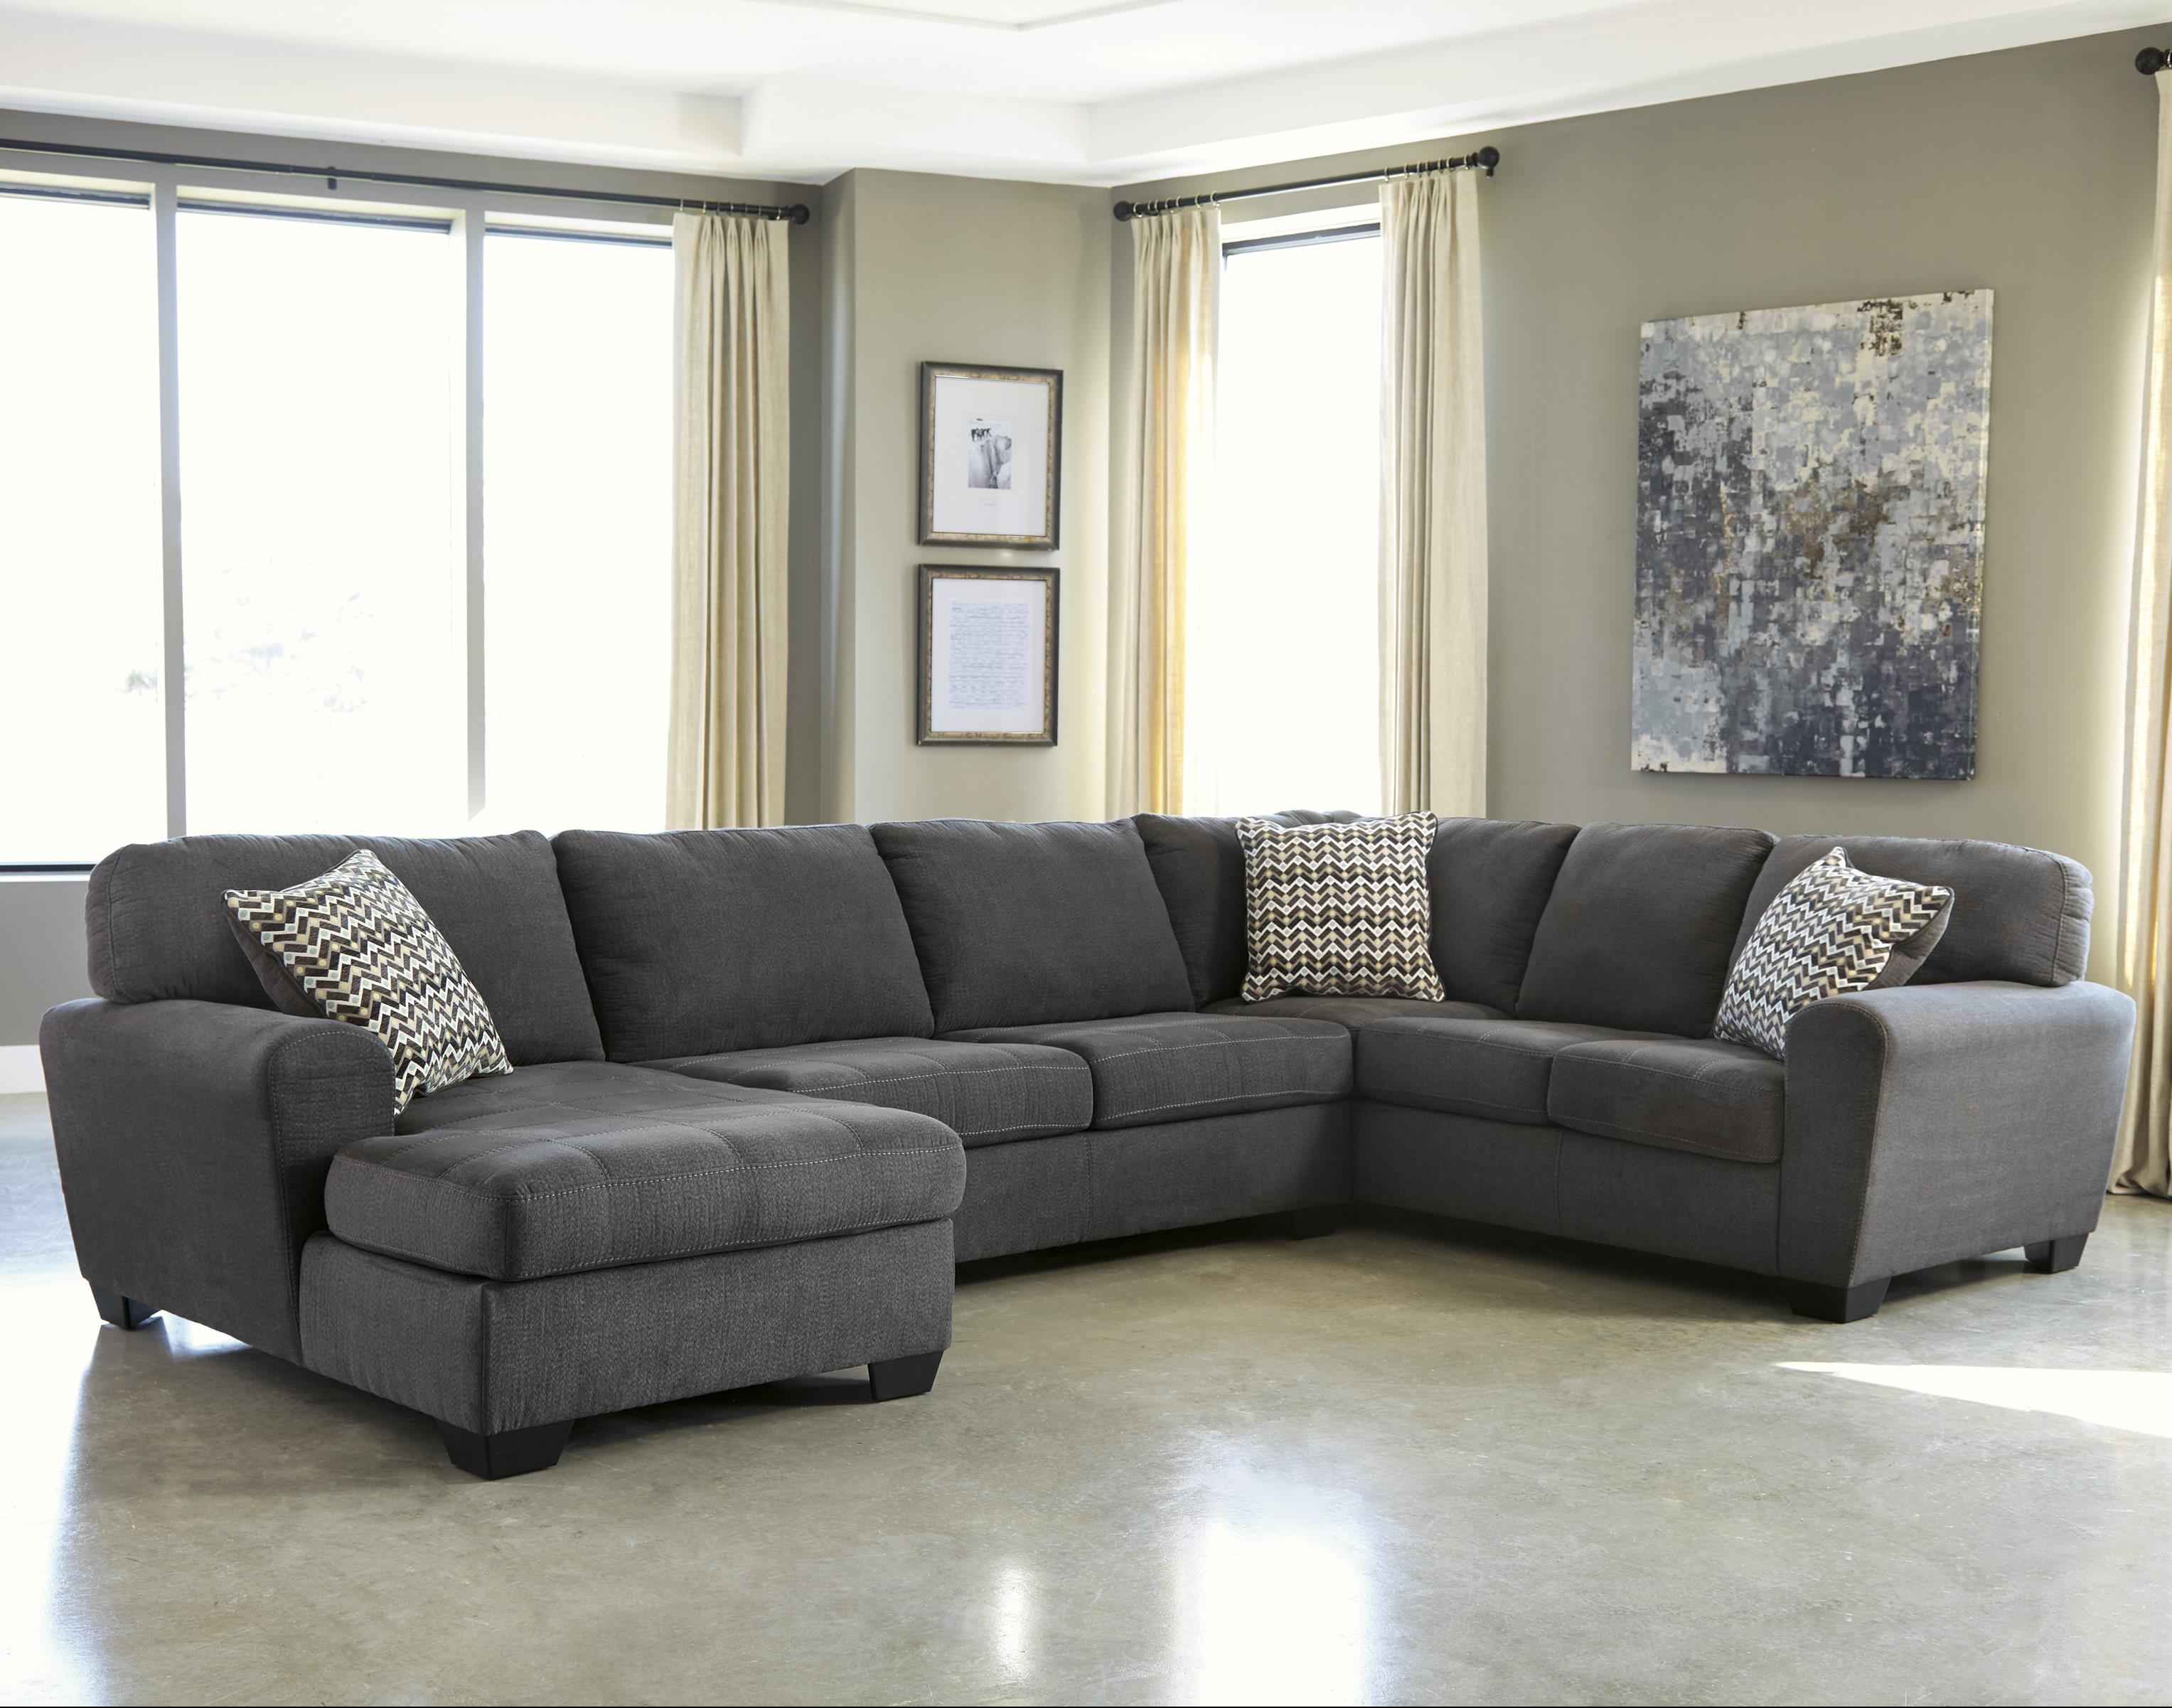 jamestown 2 piece sofa and loveseat group in gray seats chennai theatres benchcraft sorenton contemporary 3 sectional with